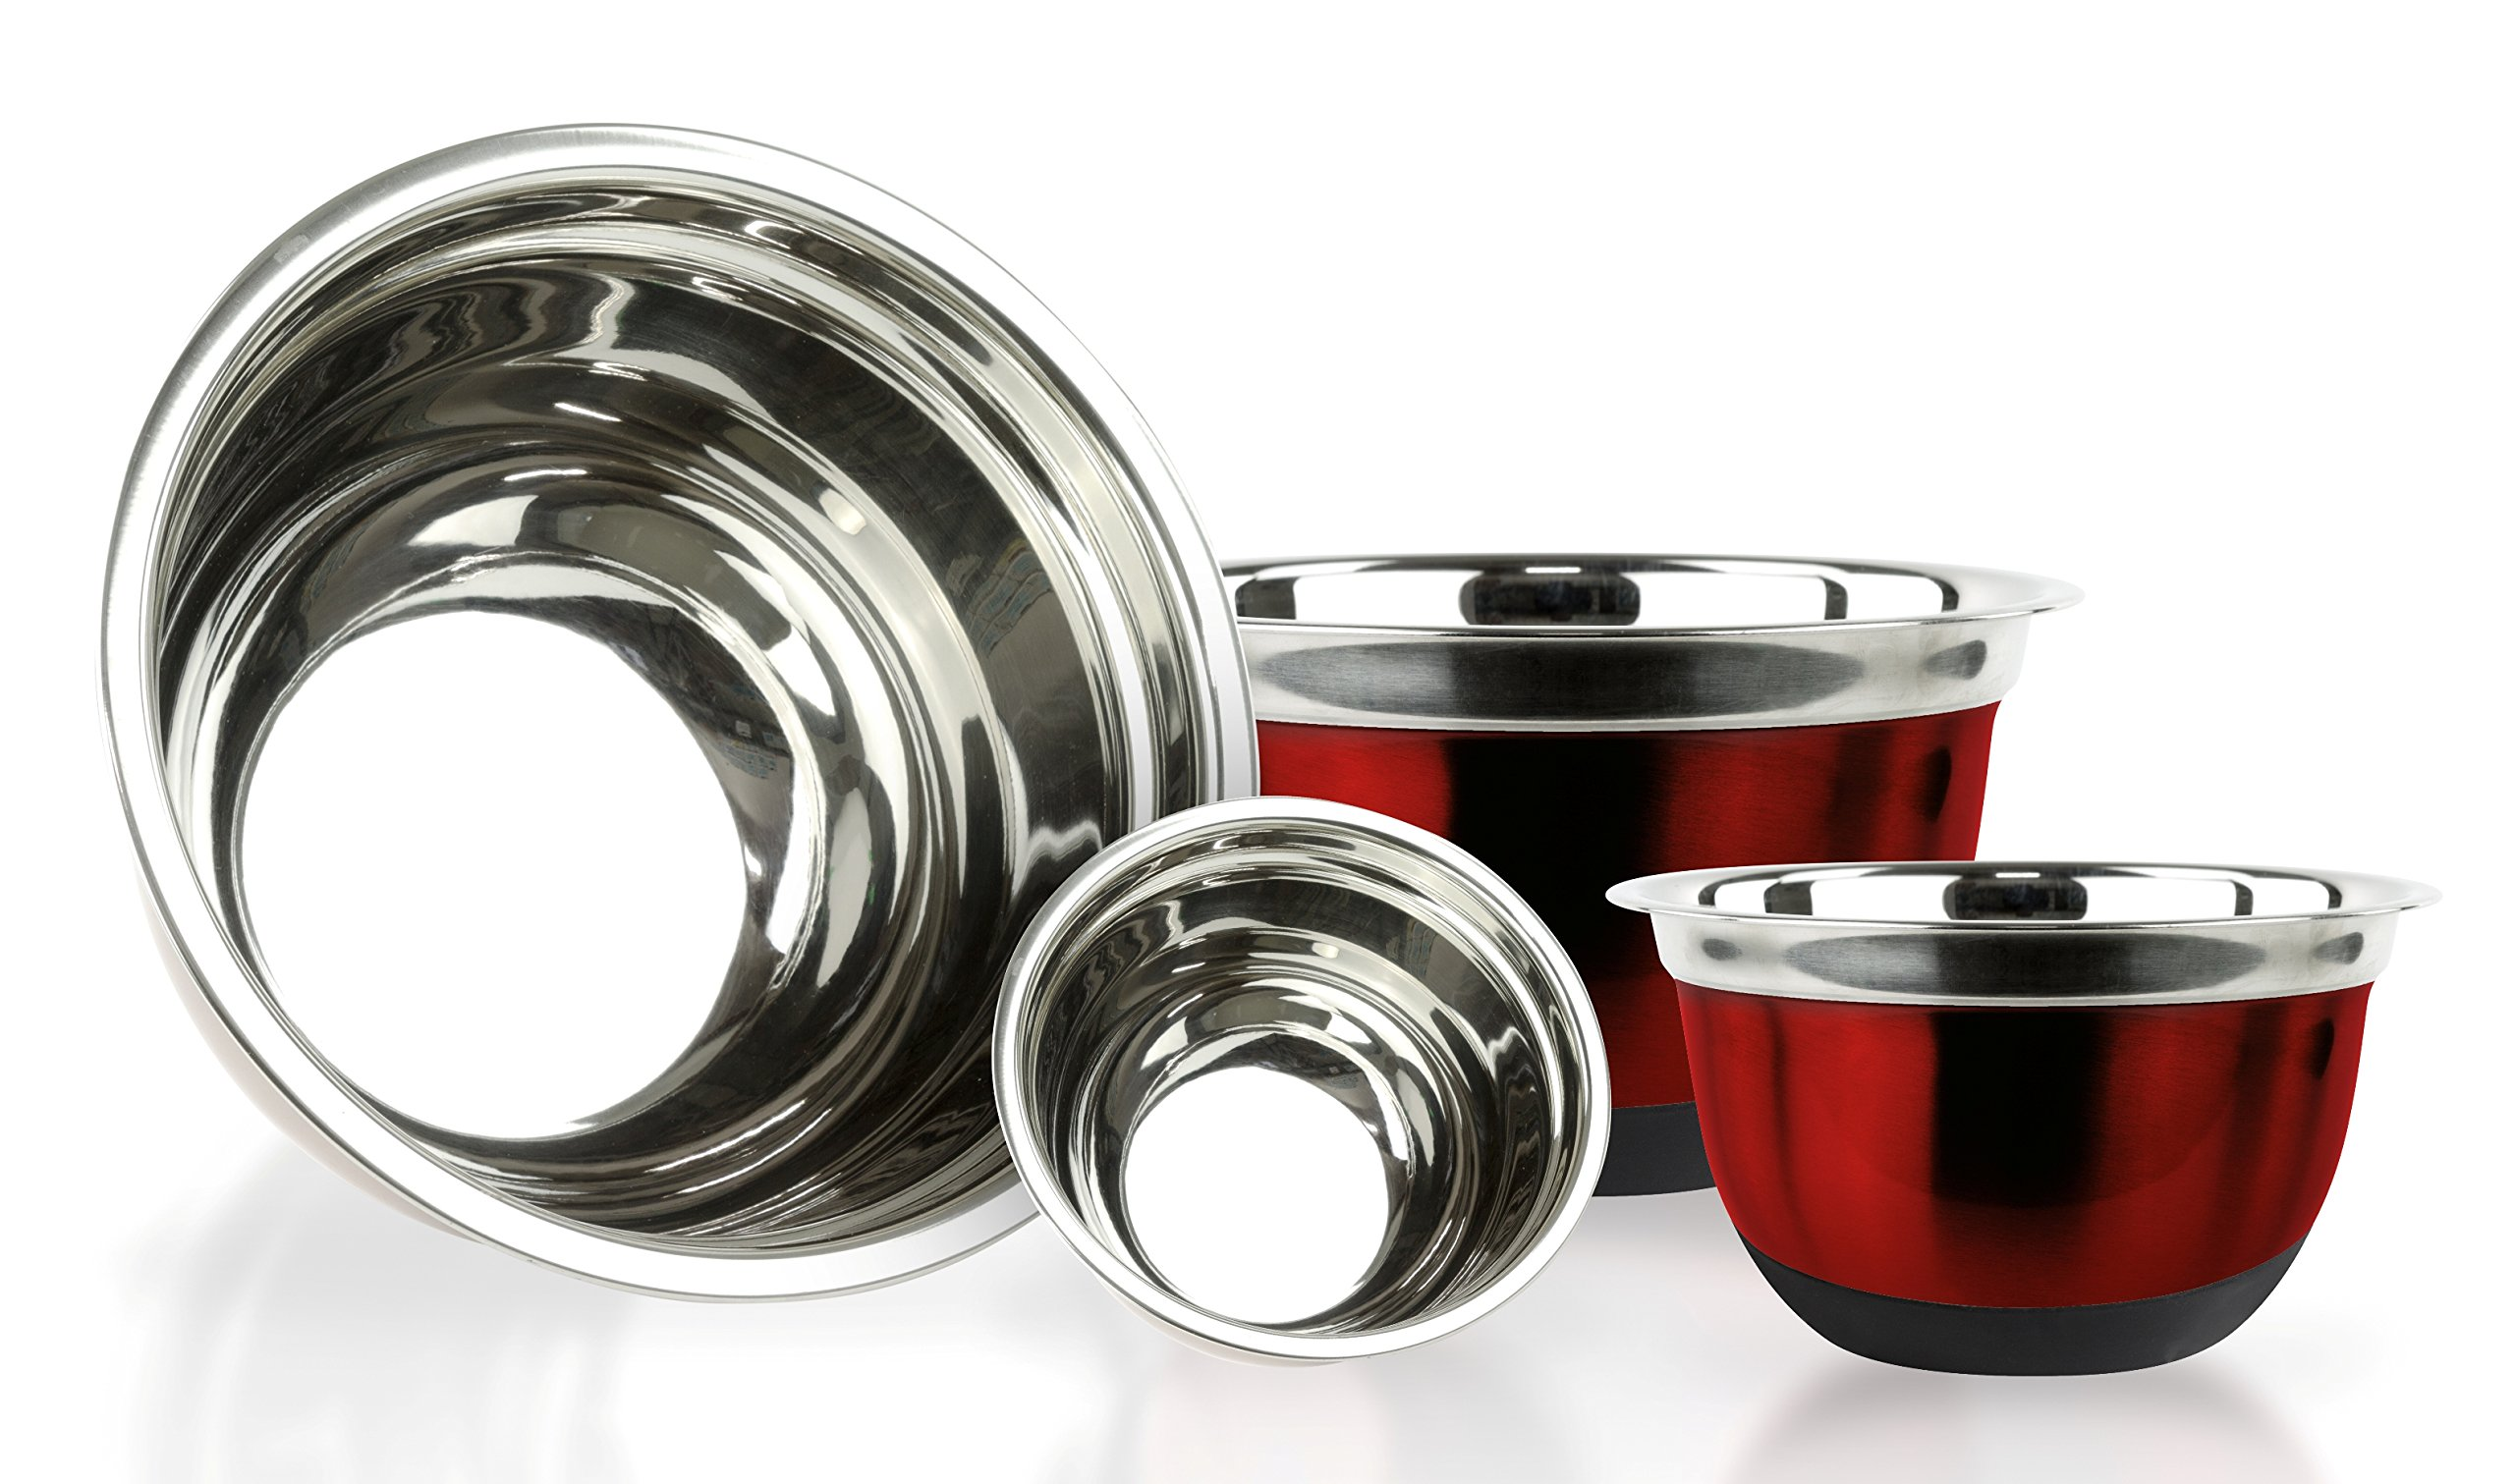 4 Pcs Stainless Steel Mixing Bowls Set - Set of 4 German Mixing Bowls Cookware Set (Red Silicone Bottoms)